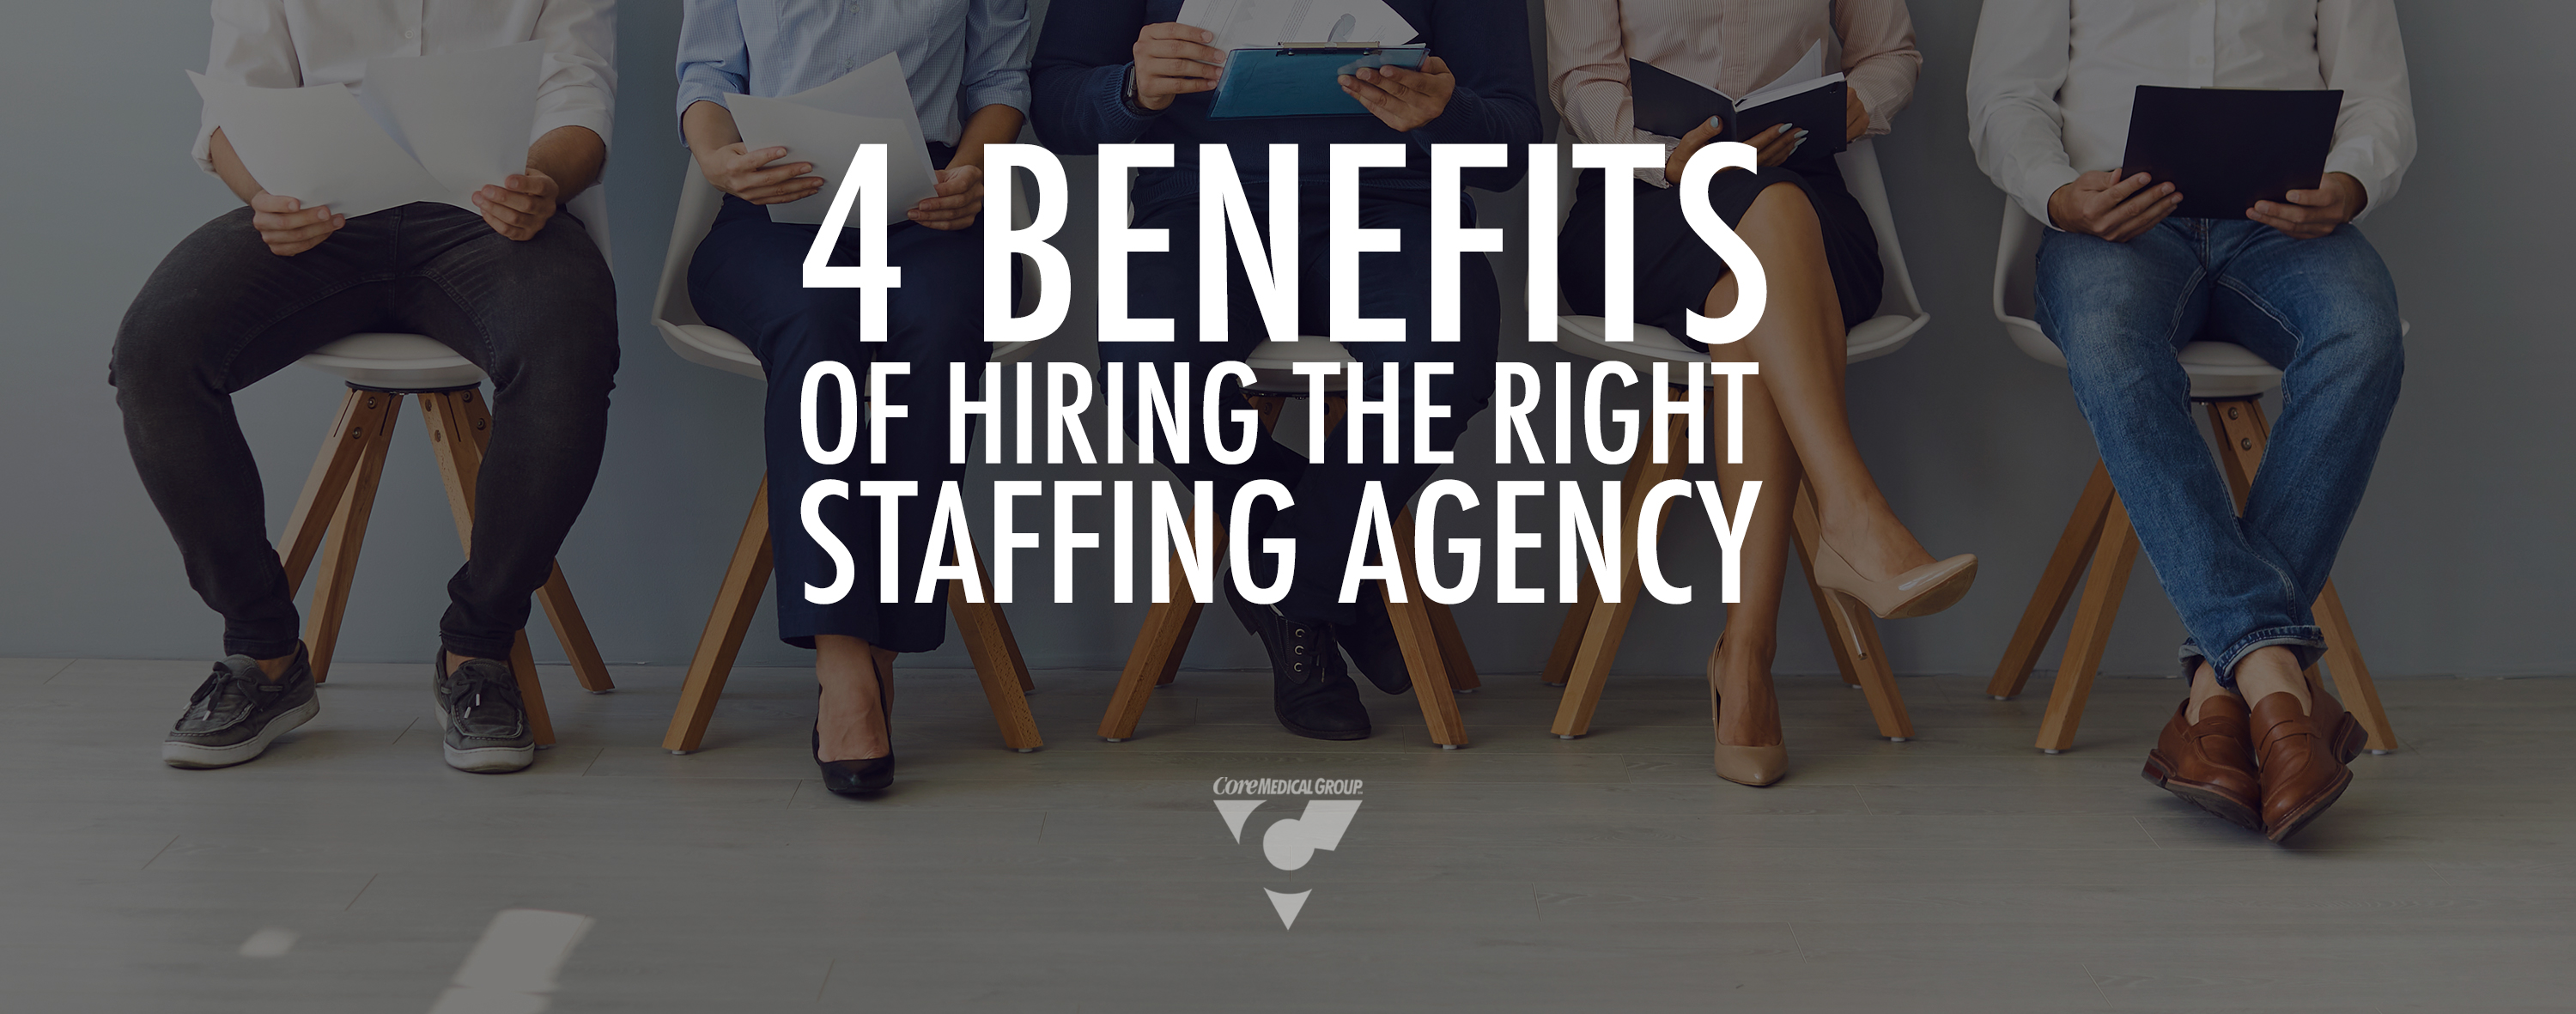 4 Benefits of Hiring the RIght Staffing Agency